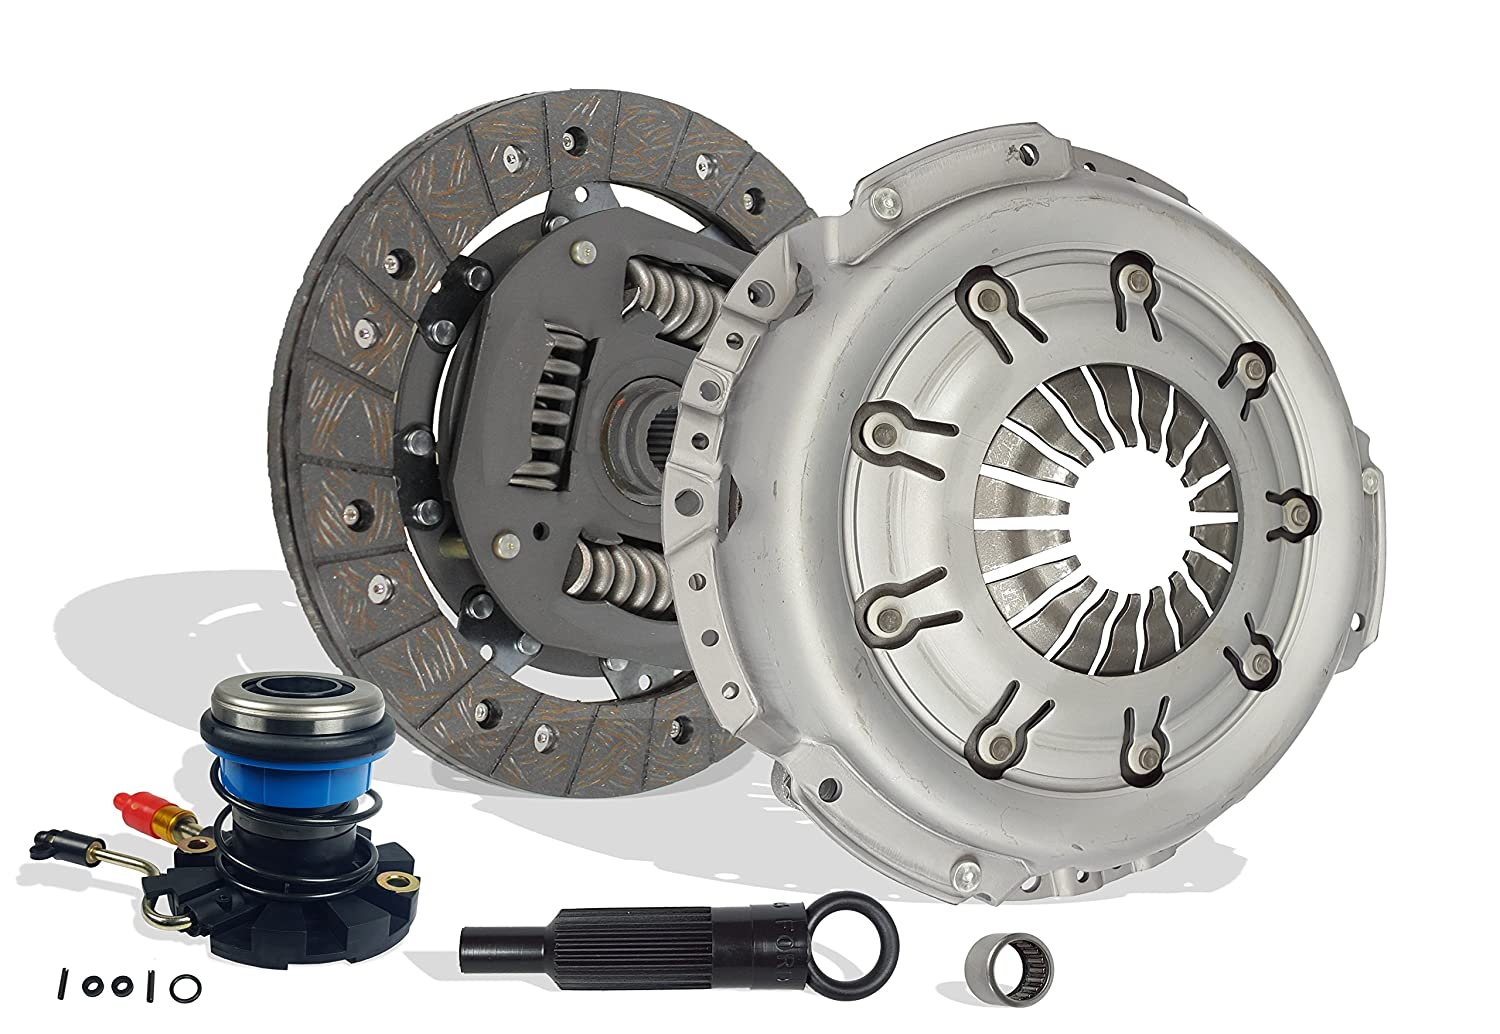 Clutch And Slave Kit Works With Ford Explorer Ranger Mazda Navajo B4000 Eddie Limited Postal Sport XL XLS XLT SE LE DX STX Troy Splash 1992-2000 4.0L V6 Gas SOHC OHV Naturally Apirated Southeast Clutch